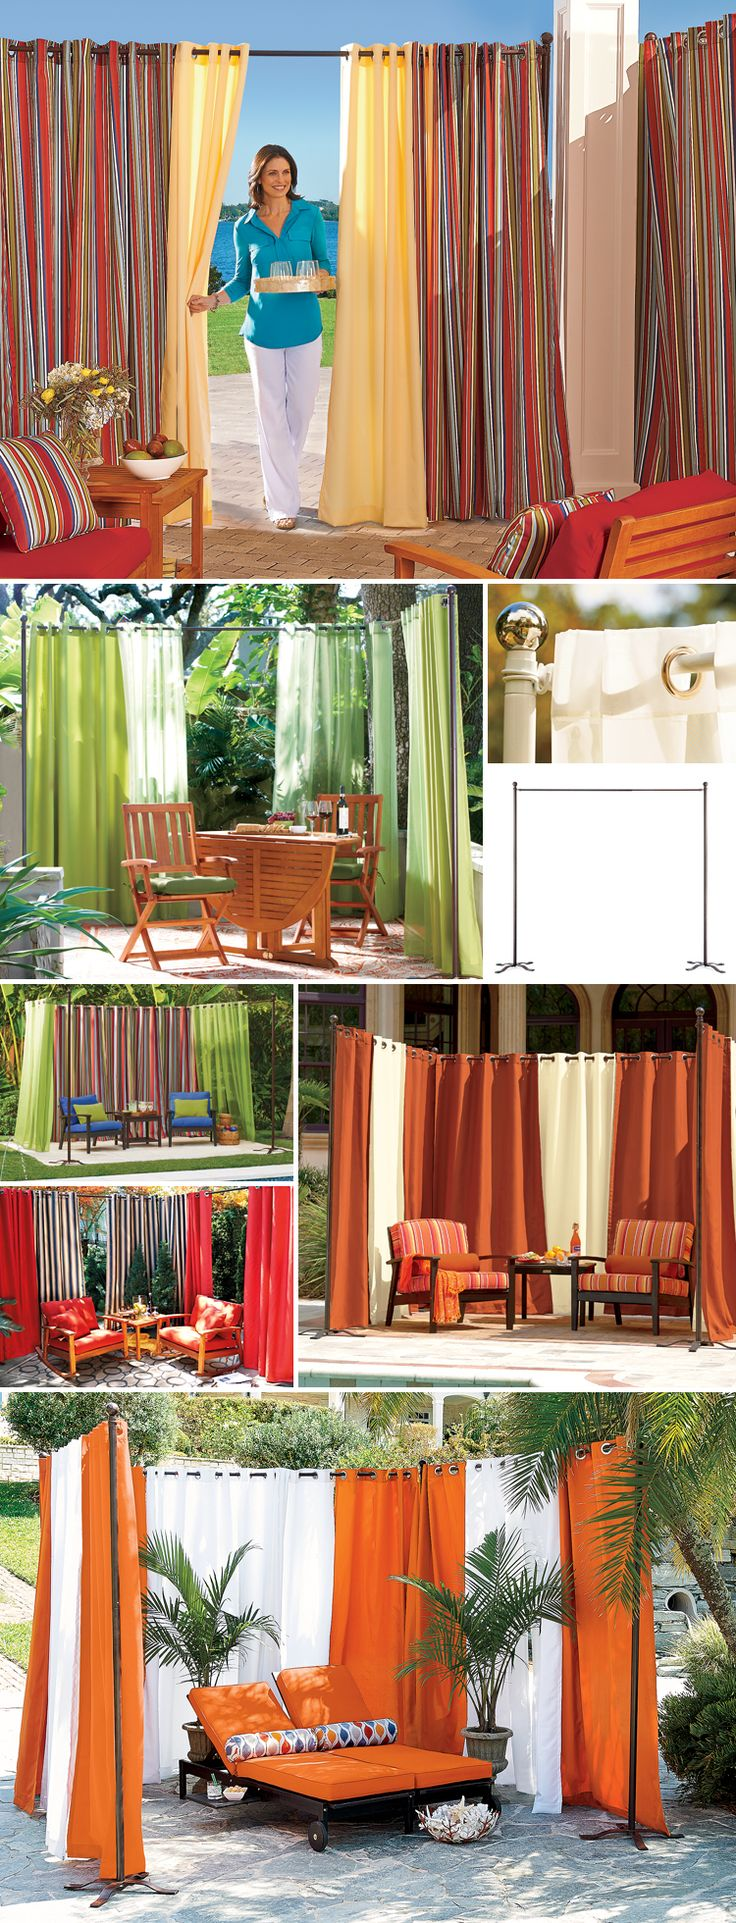 Create privacy just about anywhere with a freestanding curtain rod and outdoor curtains.Patios Curtains, Curtains Rods, Curtain Rods, Outdoor Curtains, Freestanding Curtains